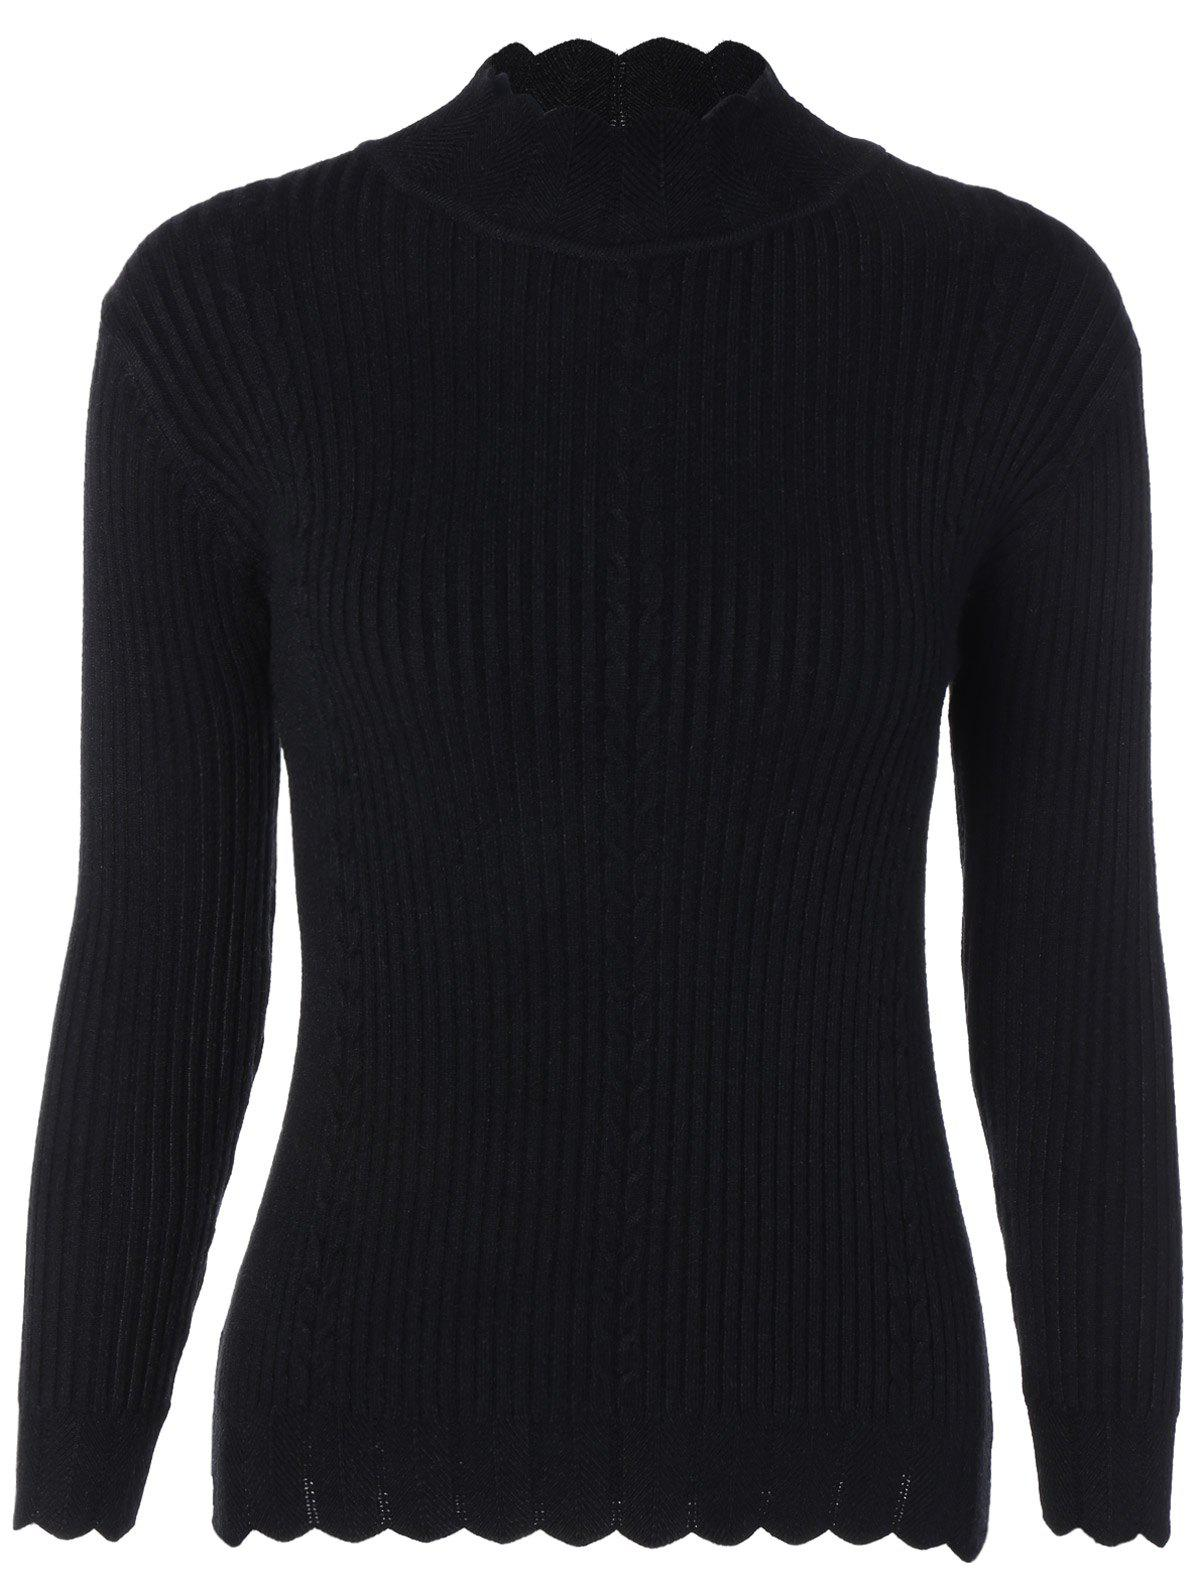 Drop Shoulder Scalloped Ribbed Sweater - BLACK ONE SIZE